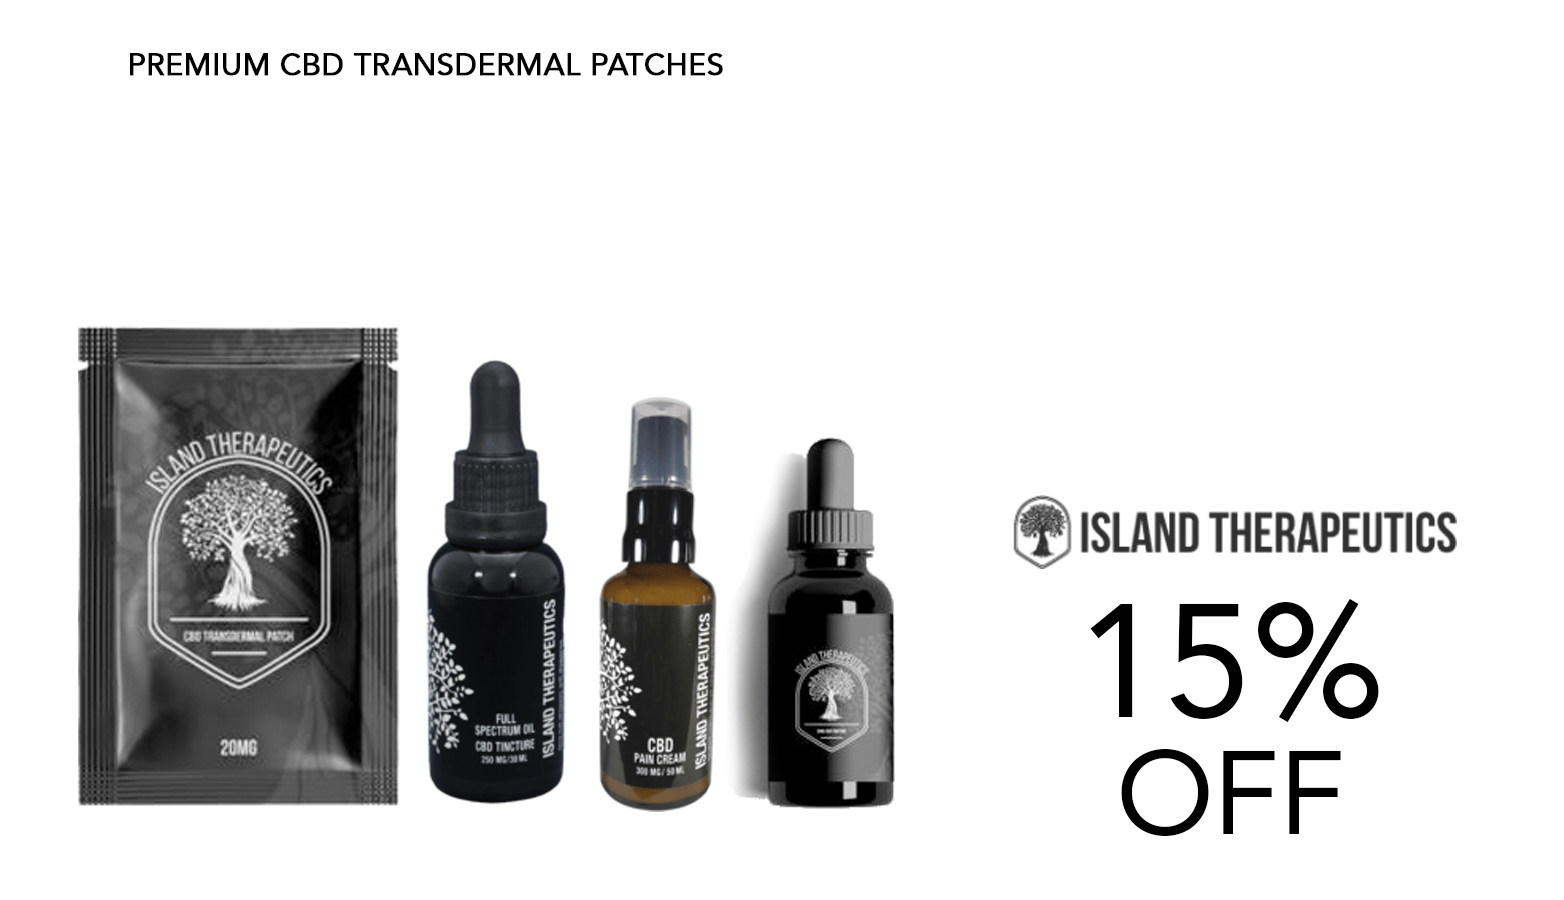 Island Therapeutics CBD Coupon Code Offer Website